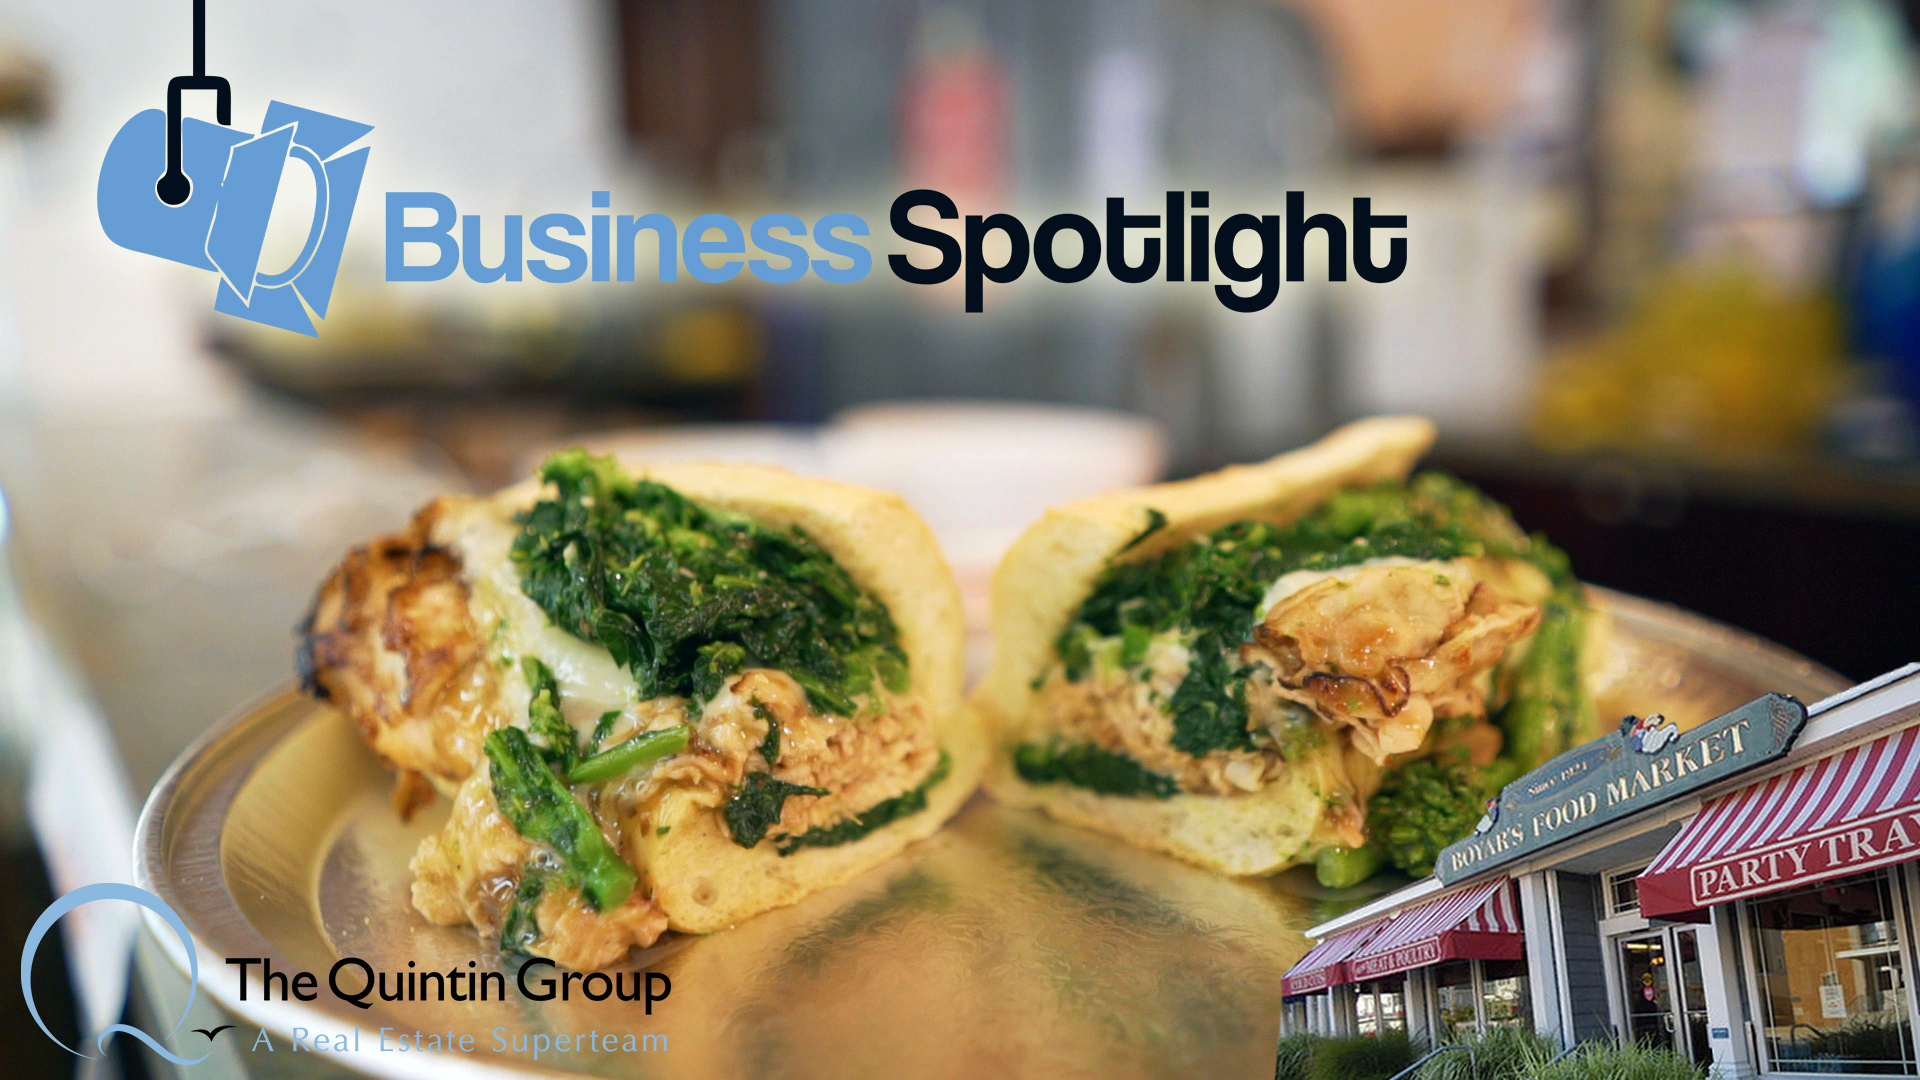 Business Spotlight: Boyar's Food Market